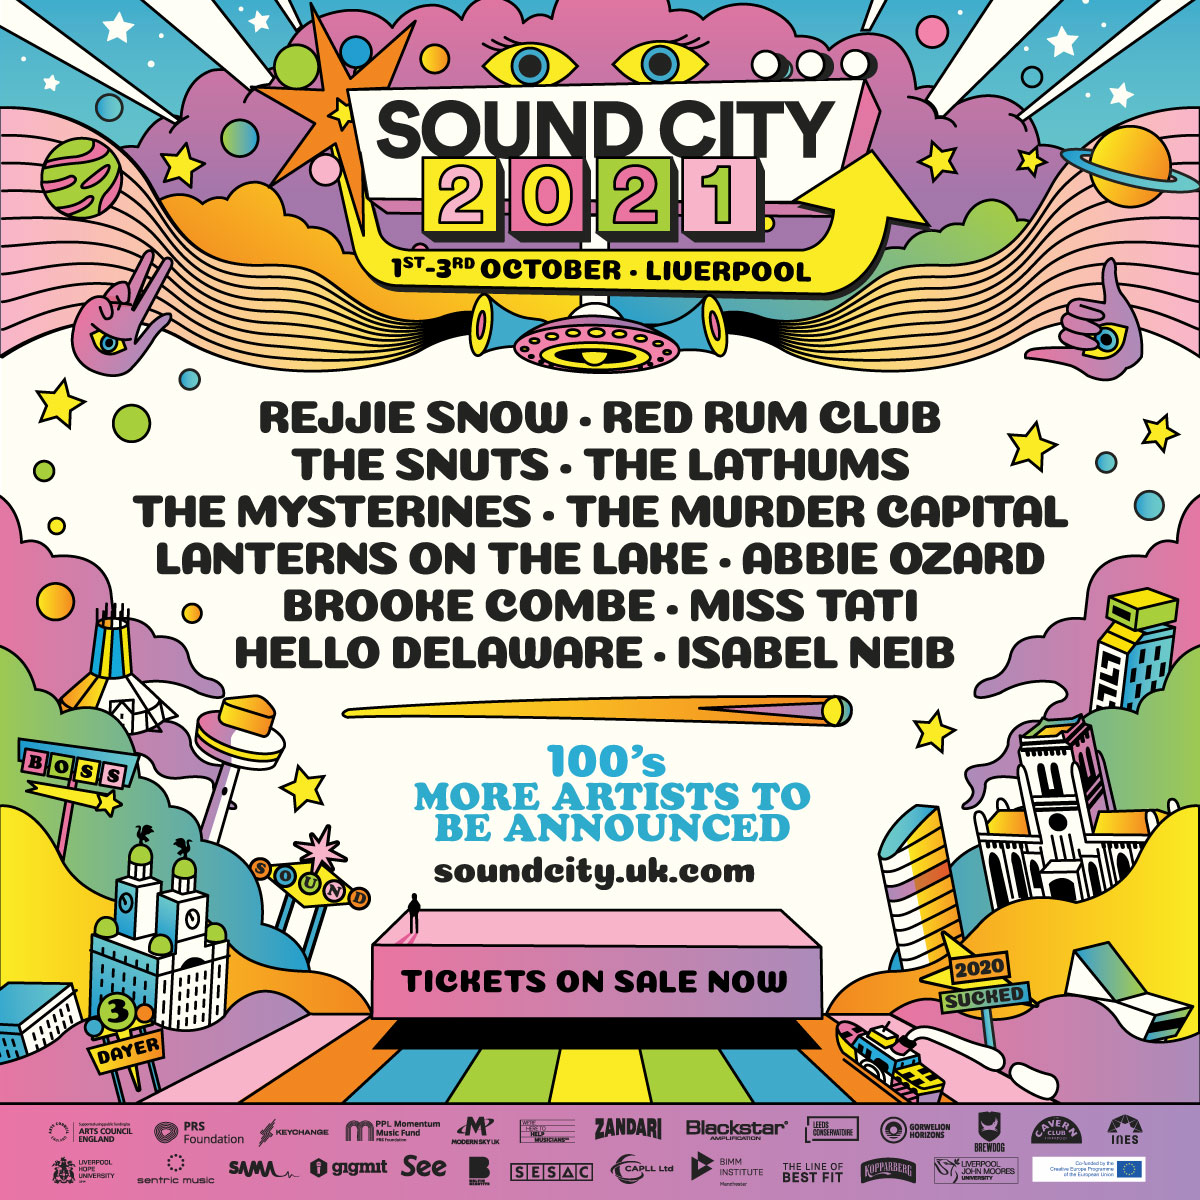 SOUND CITY confirms new festival dates this October